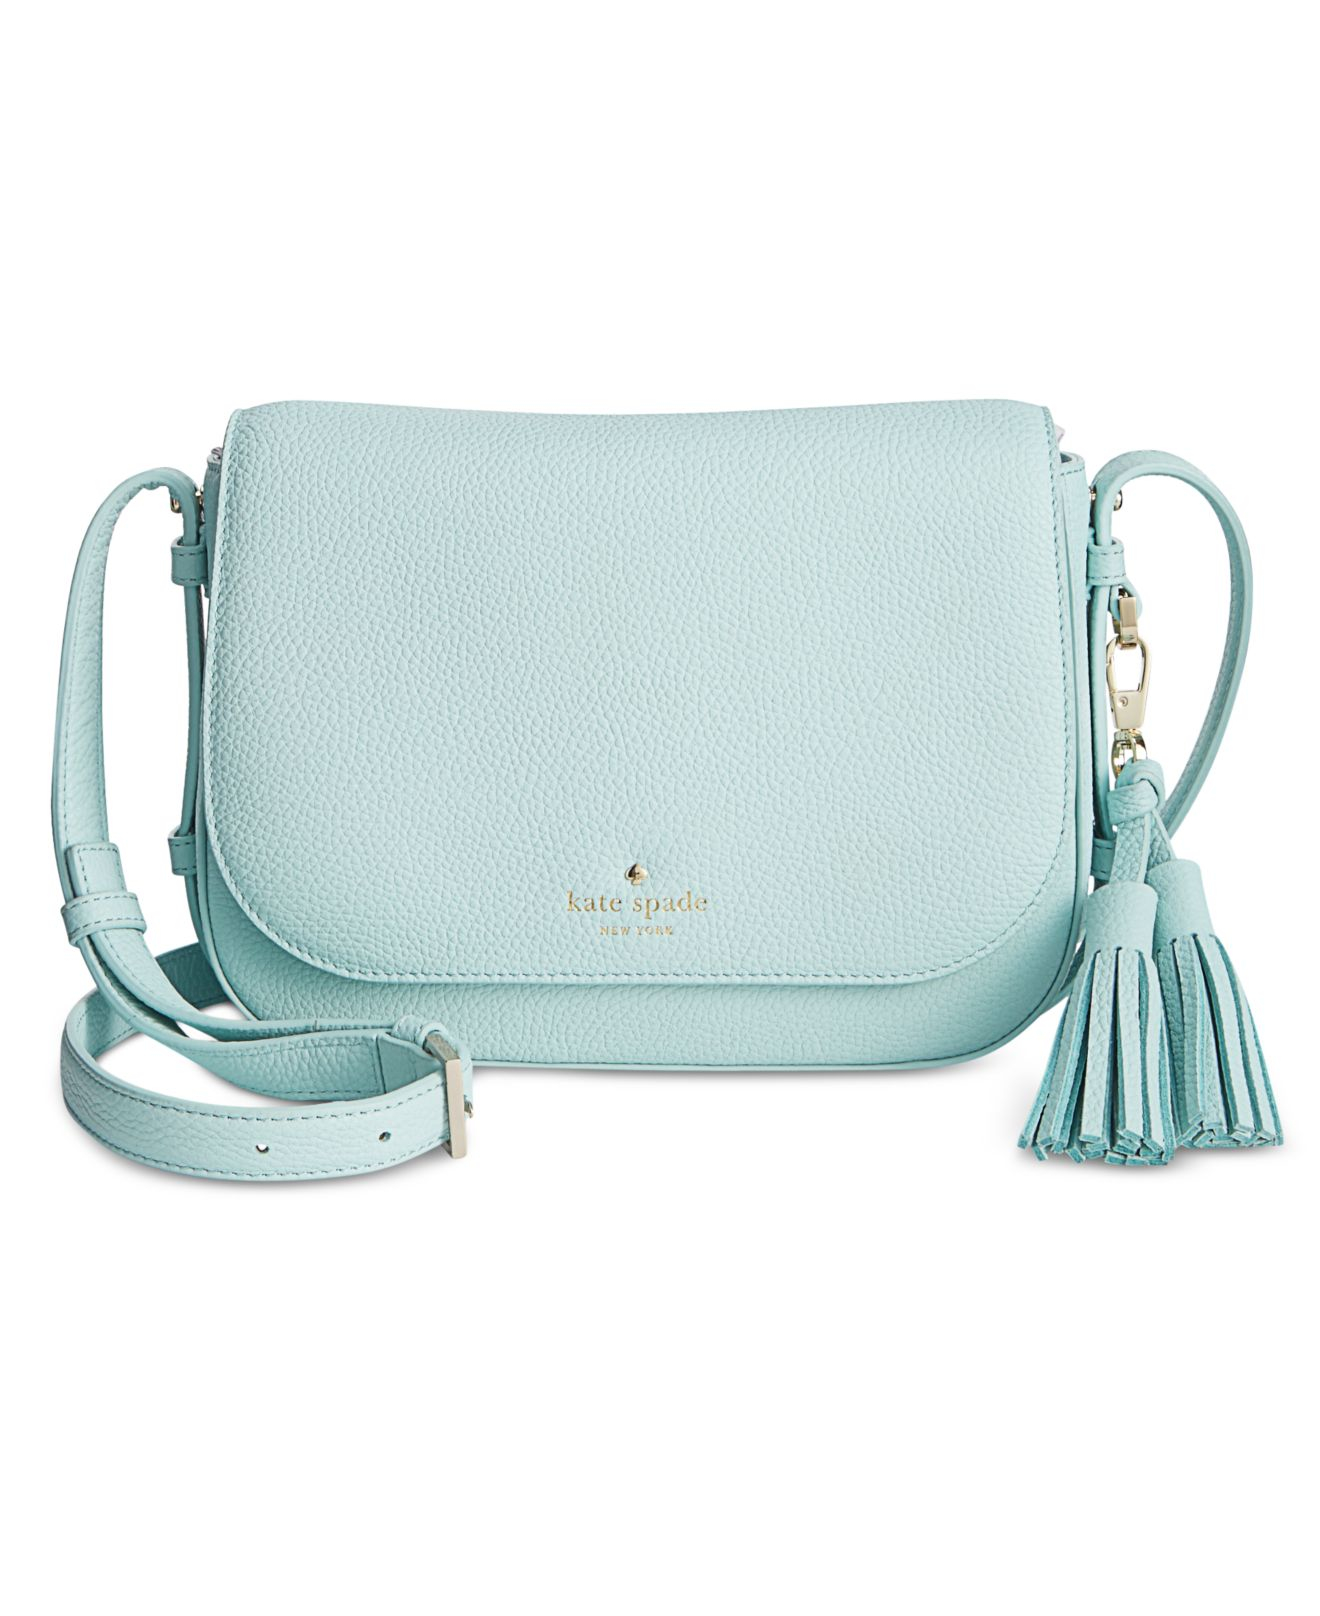 d8fb866ab Kate Spade Orchard Street Penelope Crossbody in Green - Lyst